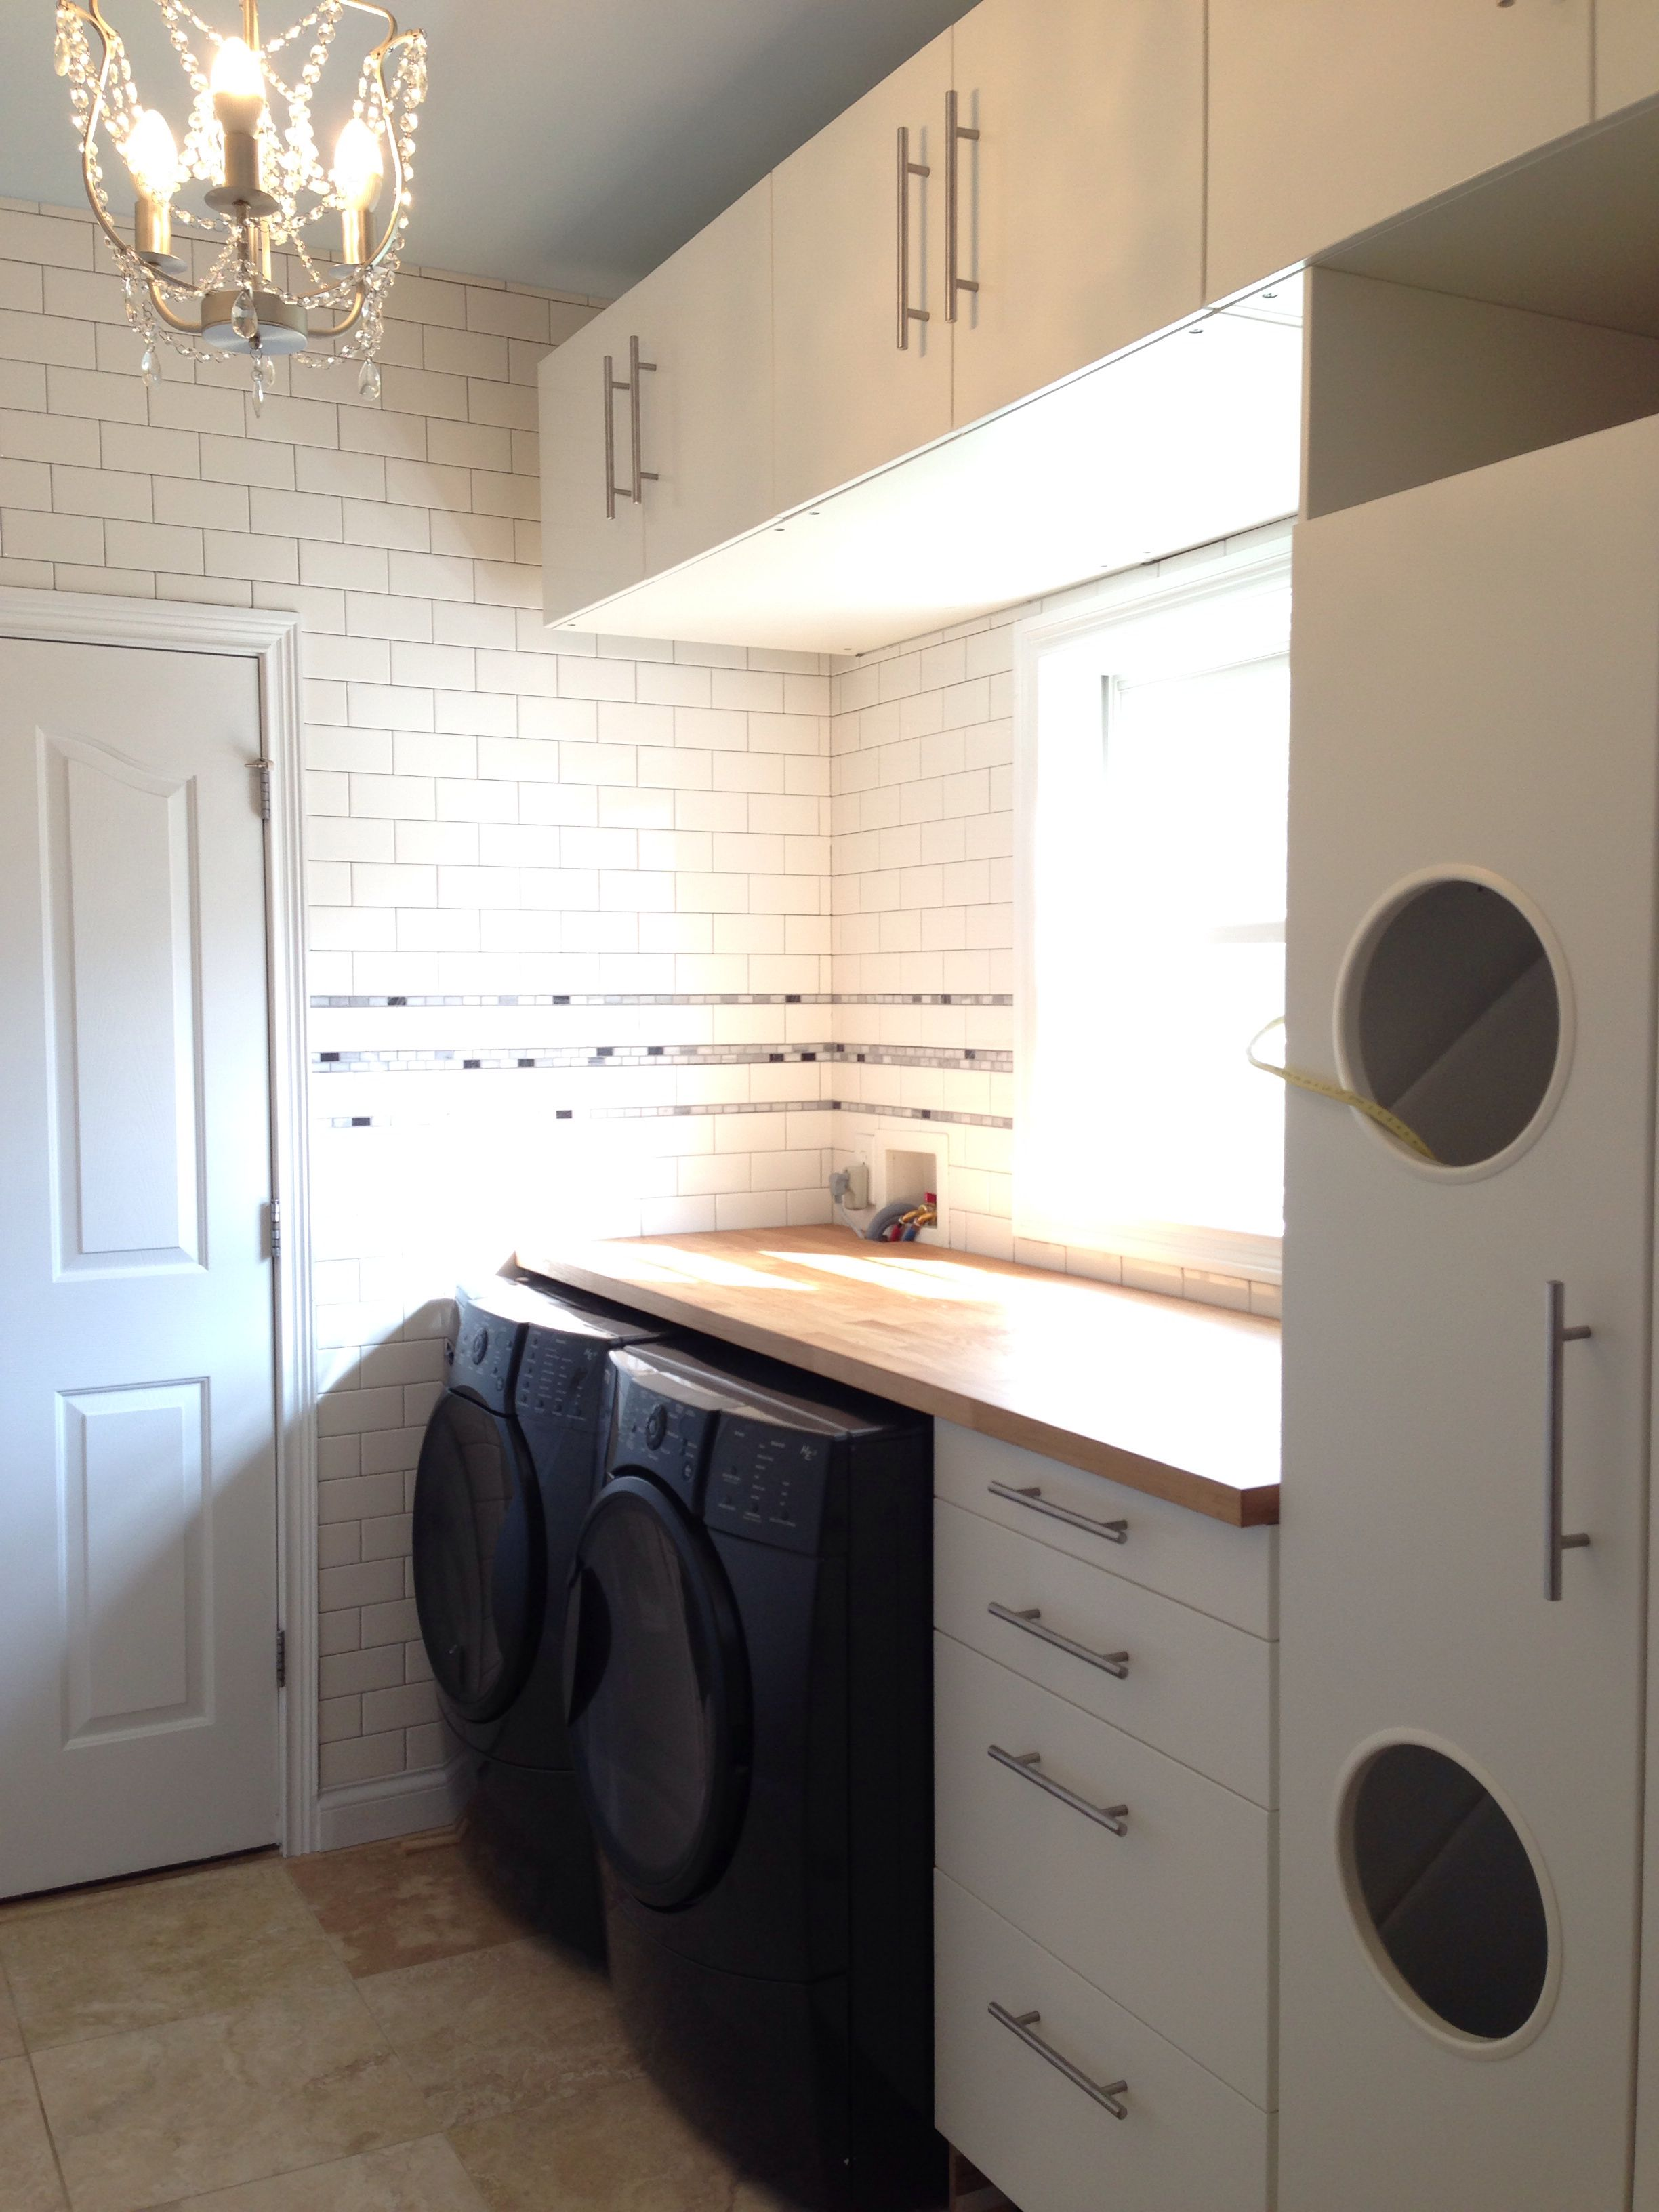 Laundry Room With Ikea Akumum Cabinets And Applad Doors The